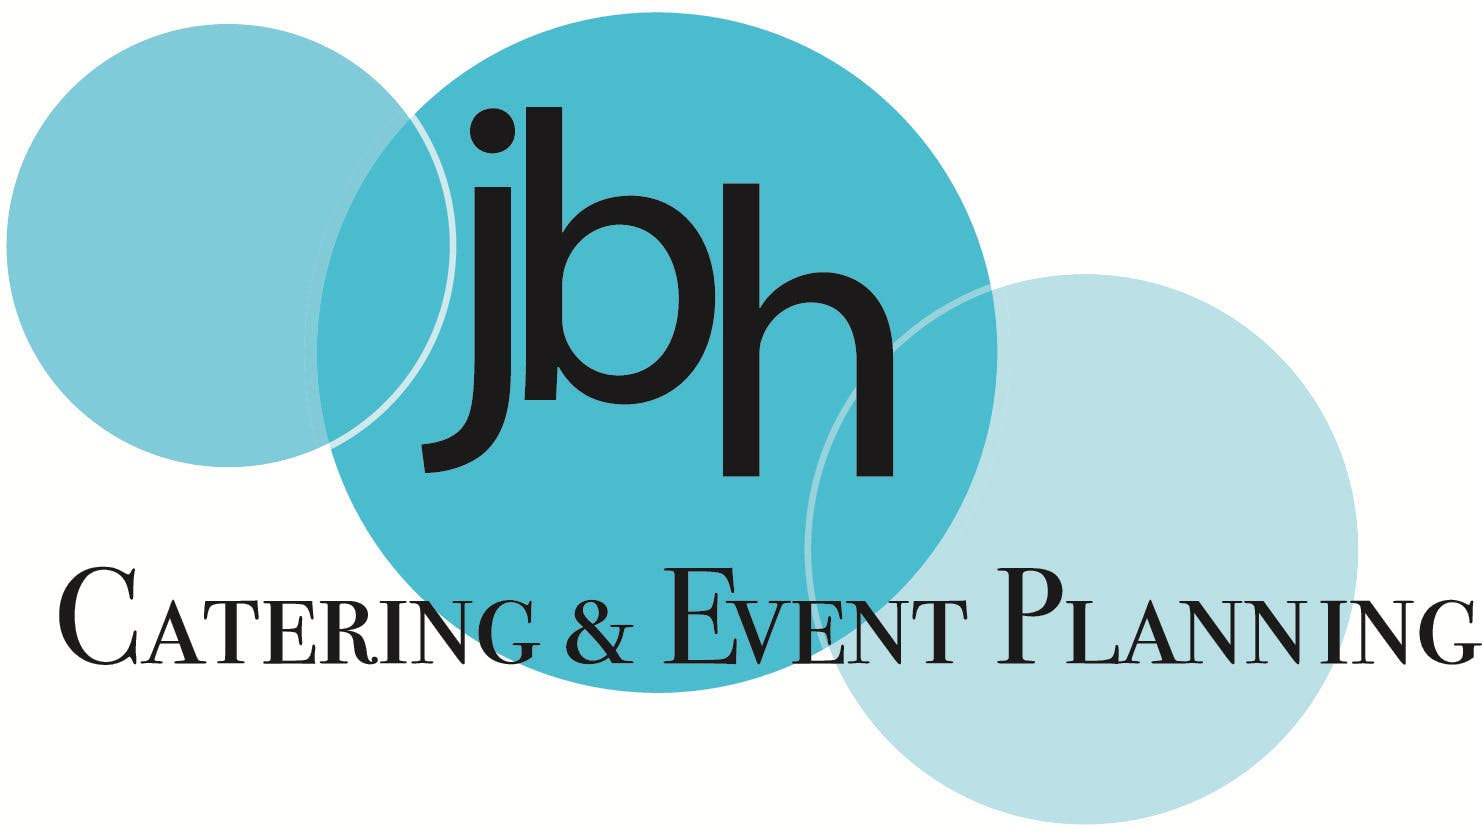 jbh Catering & Event Planning Home